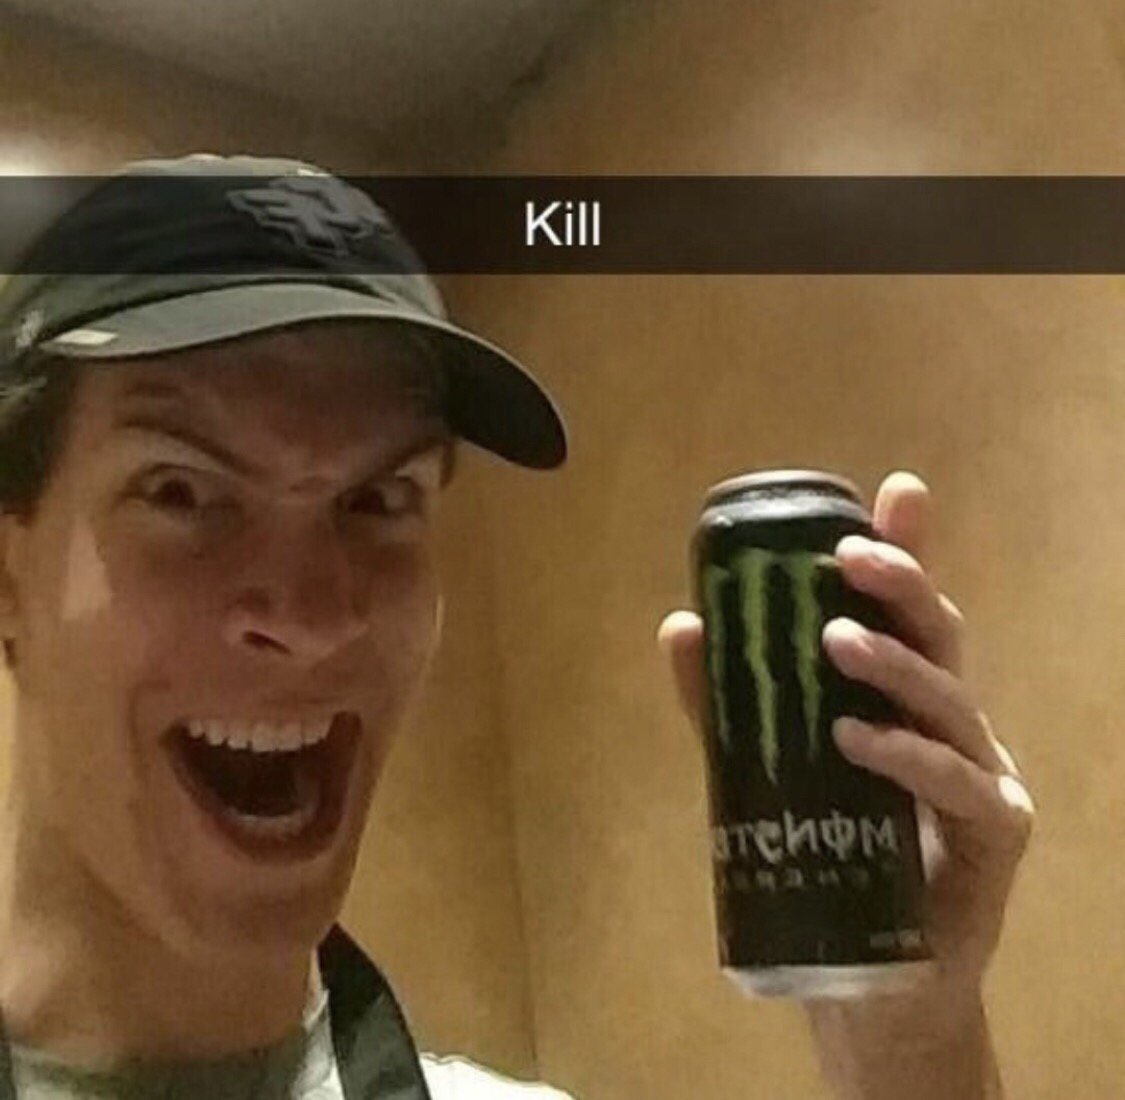 Reactions On Twitter Man With Monster Energy Drink Can Kill Crazy Smile